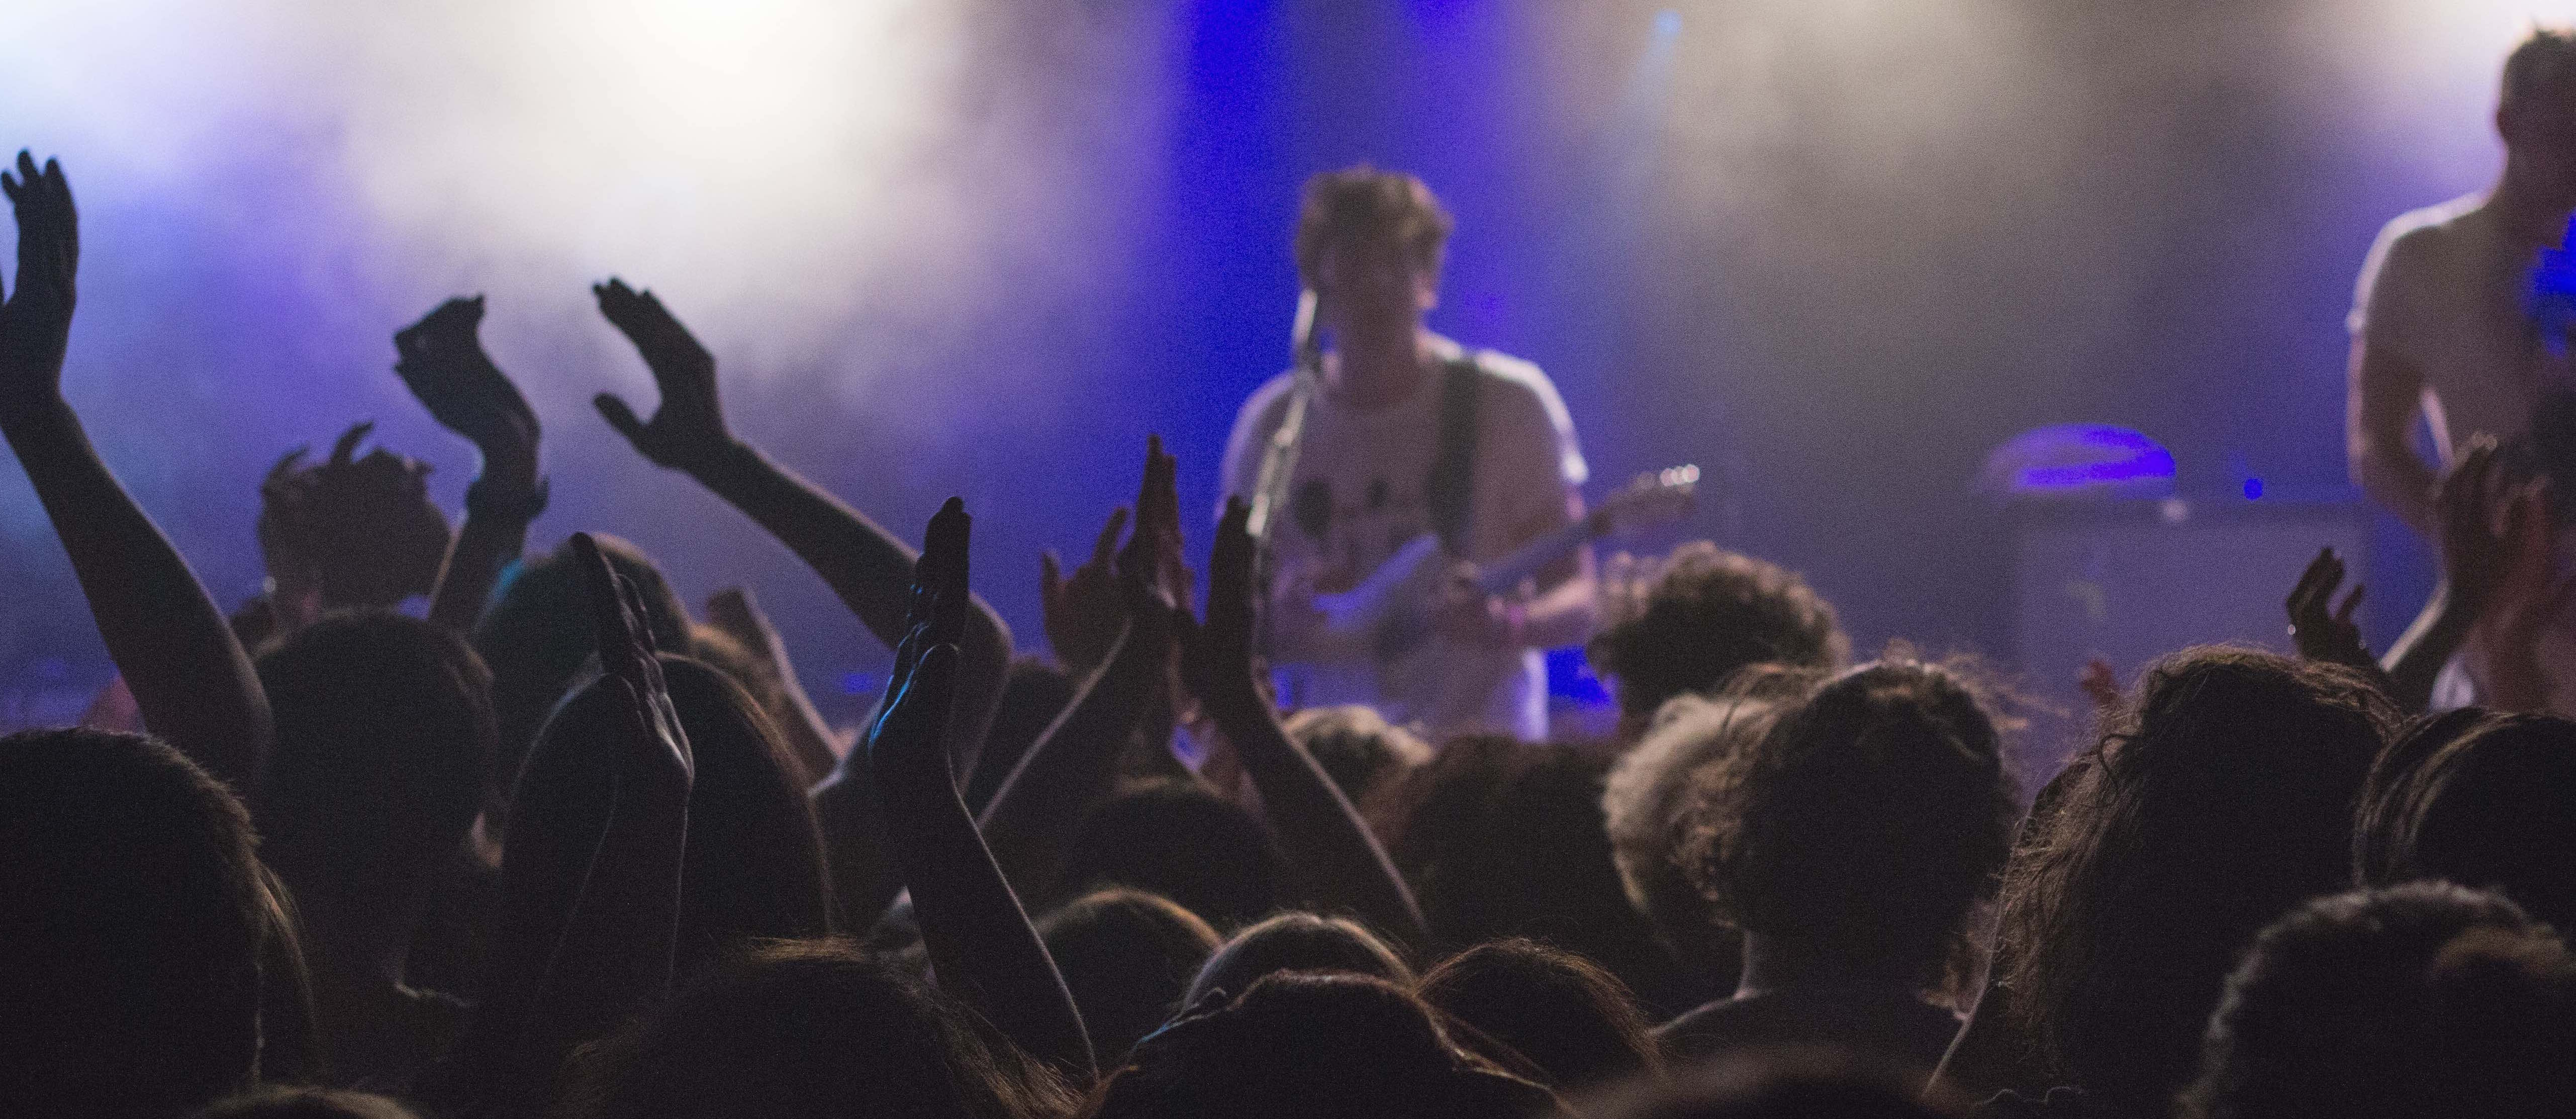 4 music venues on the future of the touring business eventbrite us artist touring business and concert trends malvernweather Choice Image